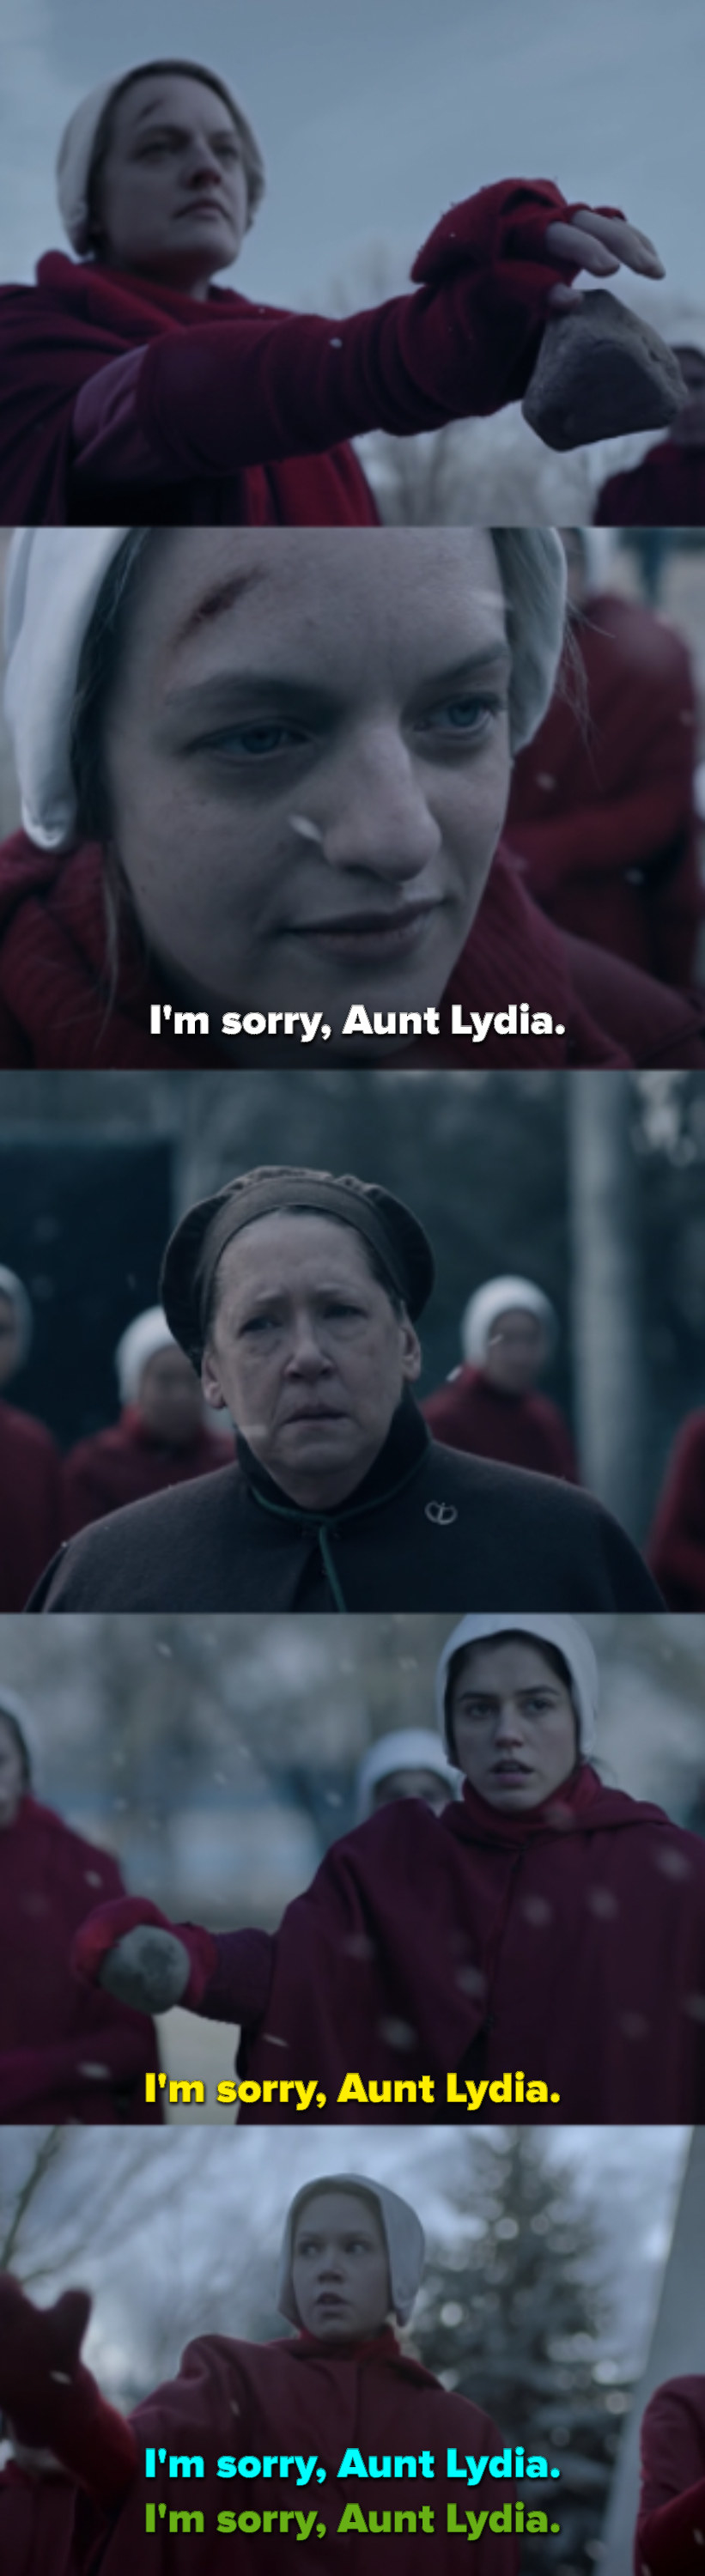 June drops her rock and says she's sorry to Aunt Lydia, then the other girls follow suit